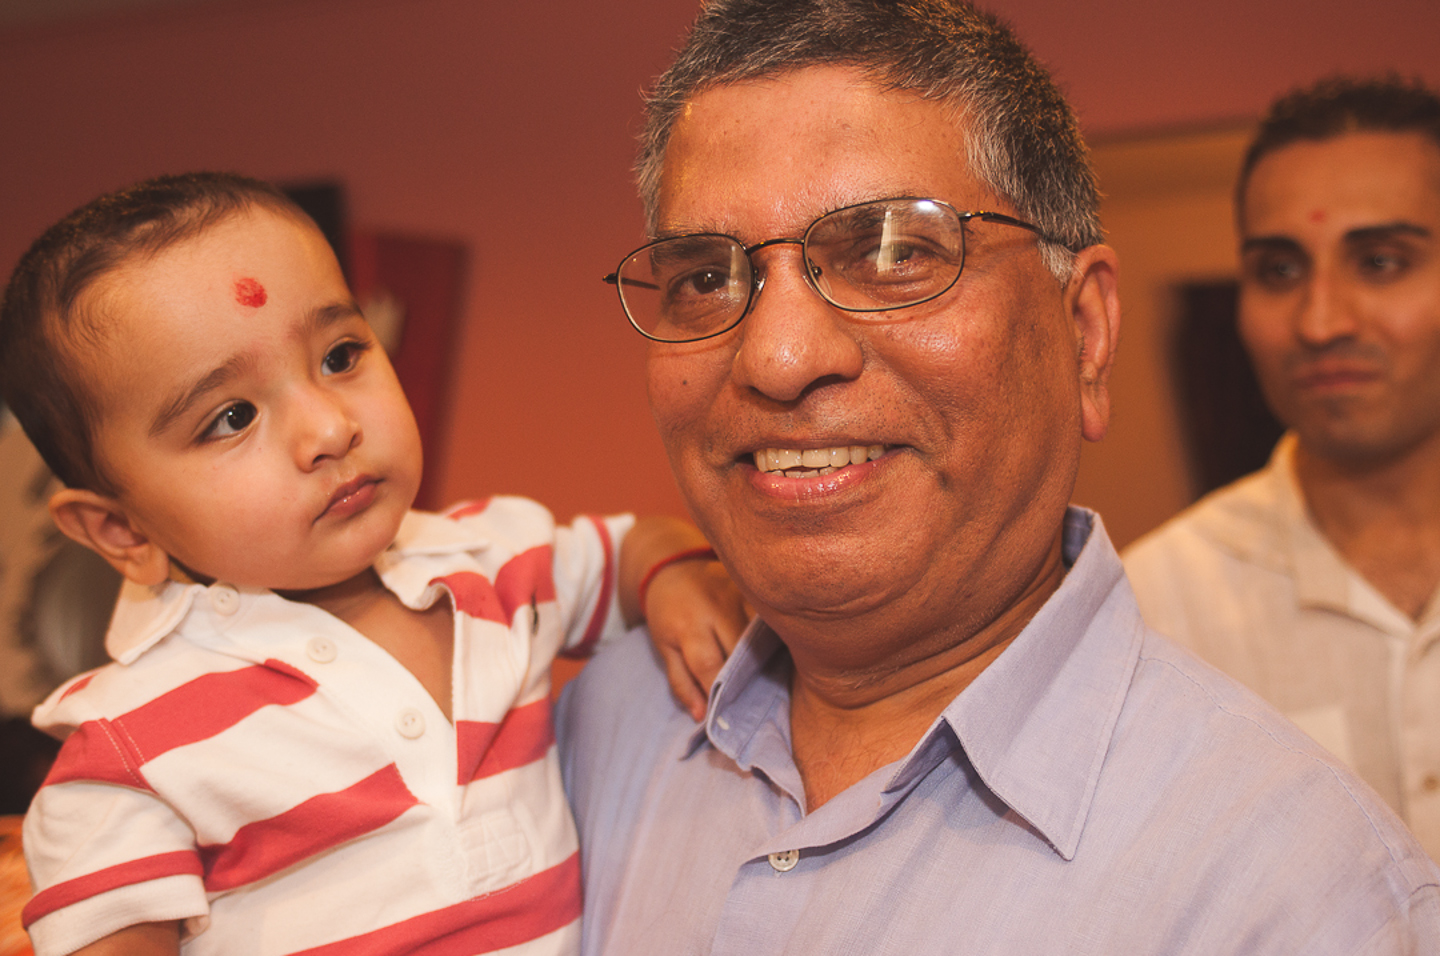 mithun-first-birthday-party-event-photography-long-island-ny-first-birthday-0049.jpg